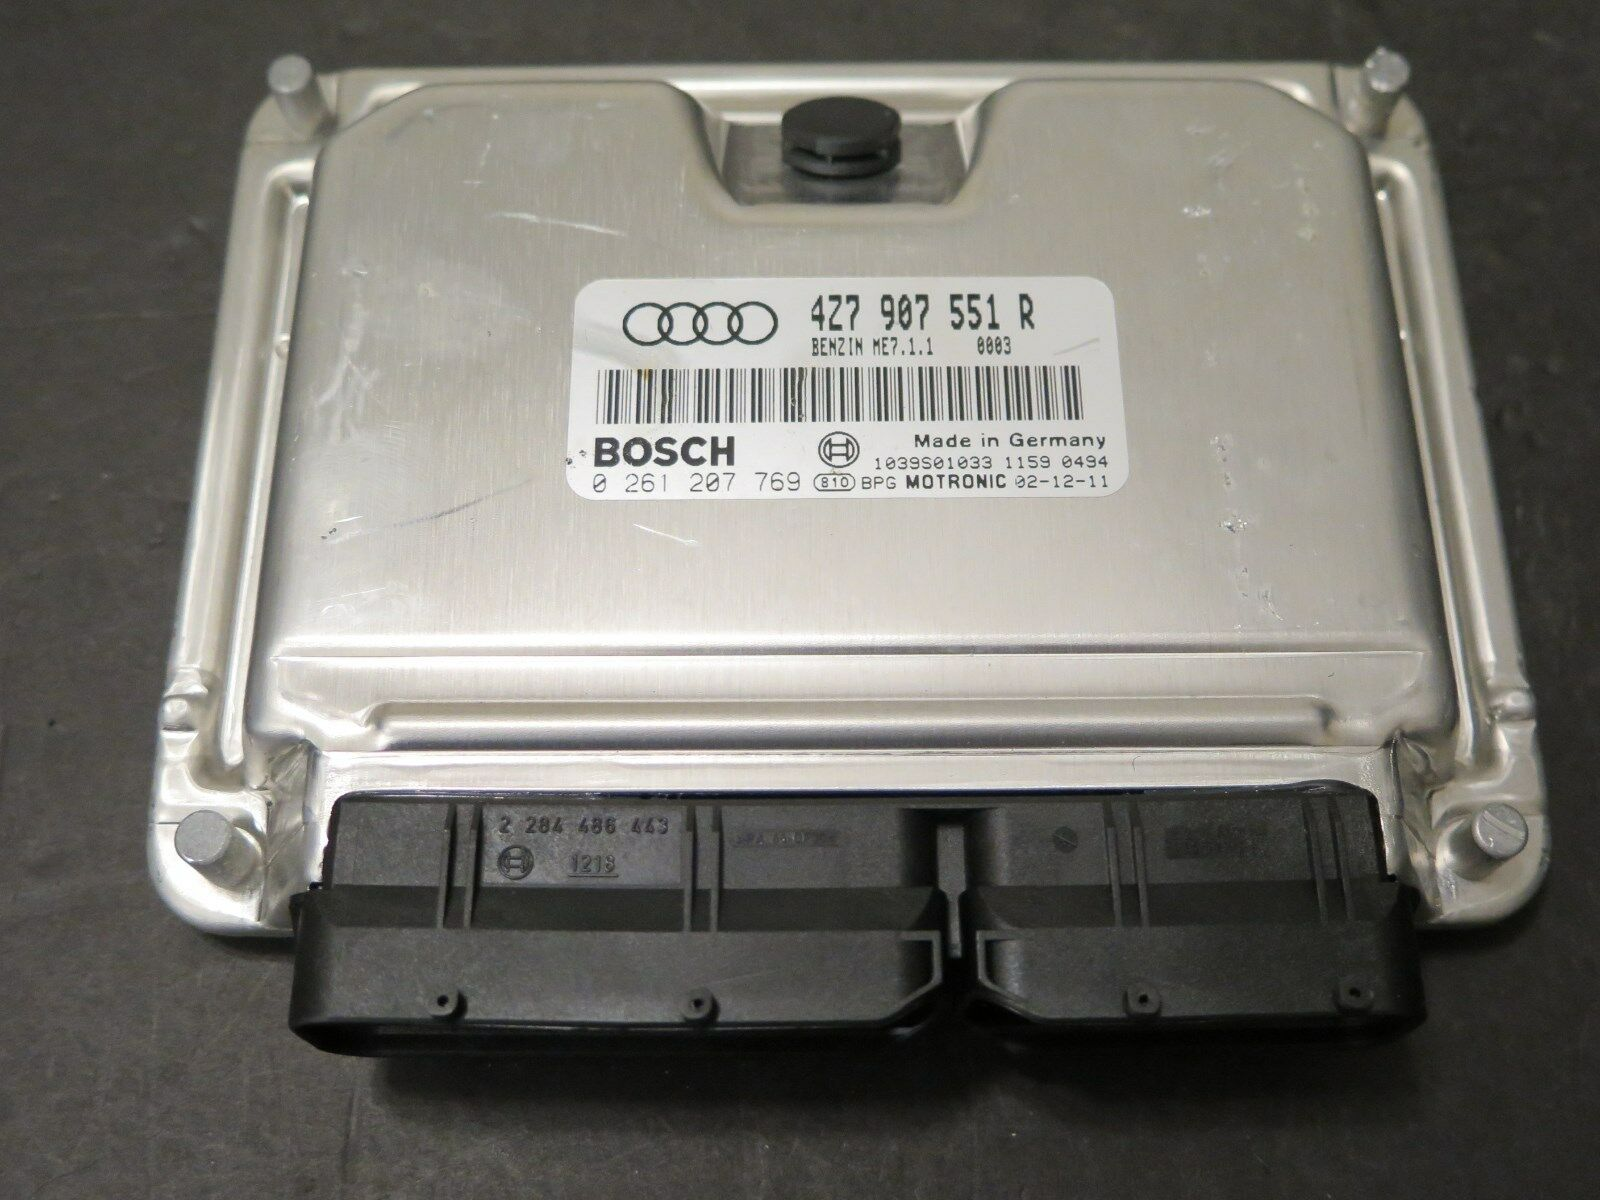 2003 Audi A6 Quattro Ecu 27l Turbo 4z7 907 551 R Allroad Ecm Wiring Harness Oem 1 Of 4only 5 Available